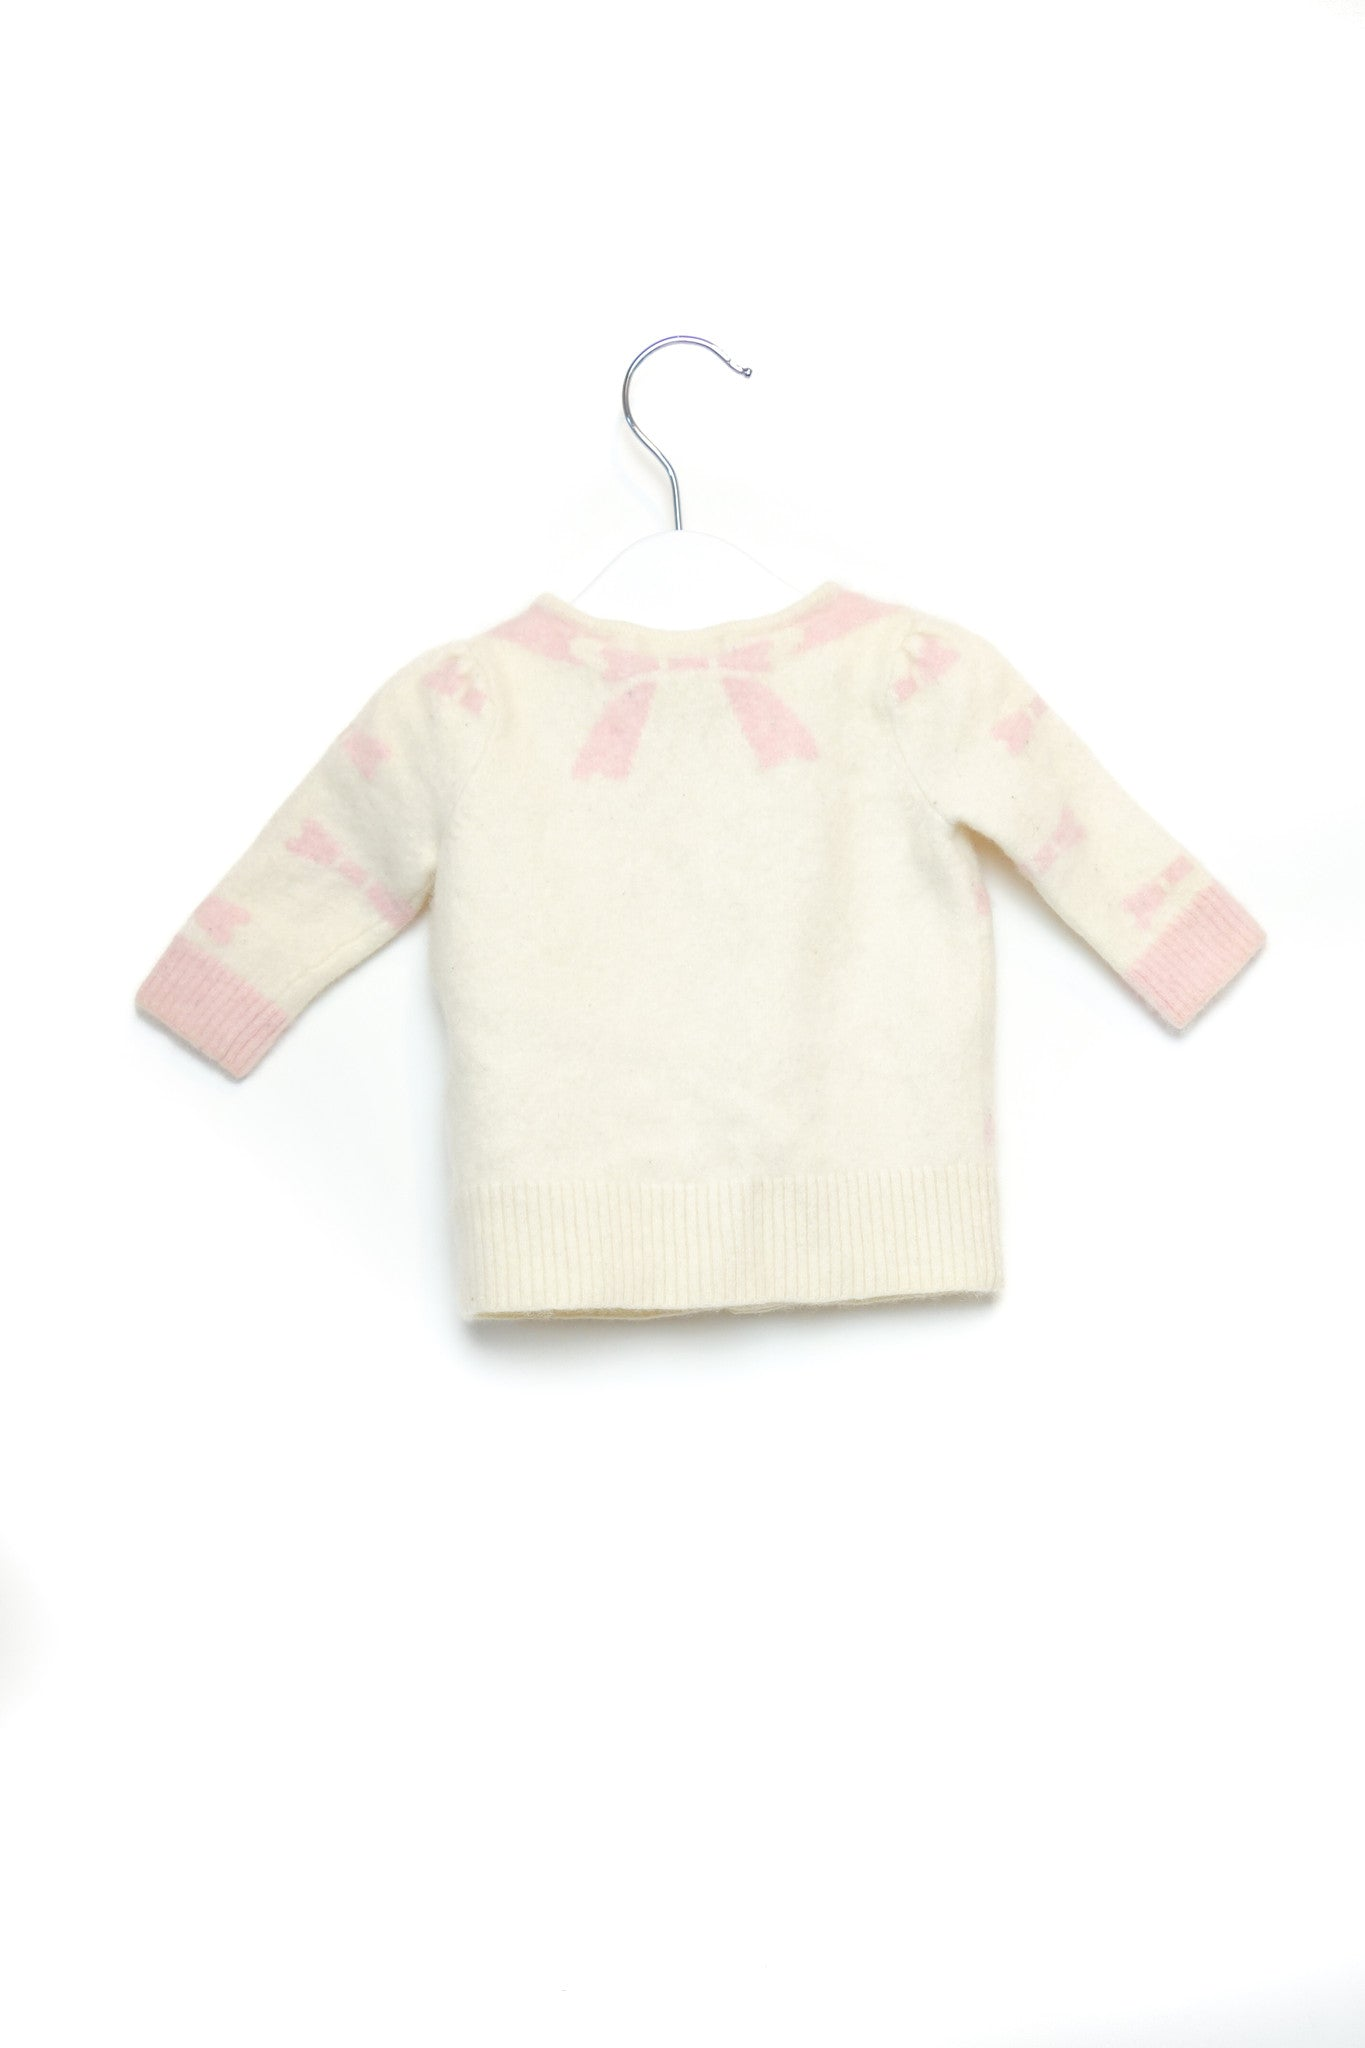 10001473~Cardigan 12M, Nicholas & Bears at Retykle - Online Baby & Kids Clothing Up to 90% Off